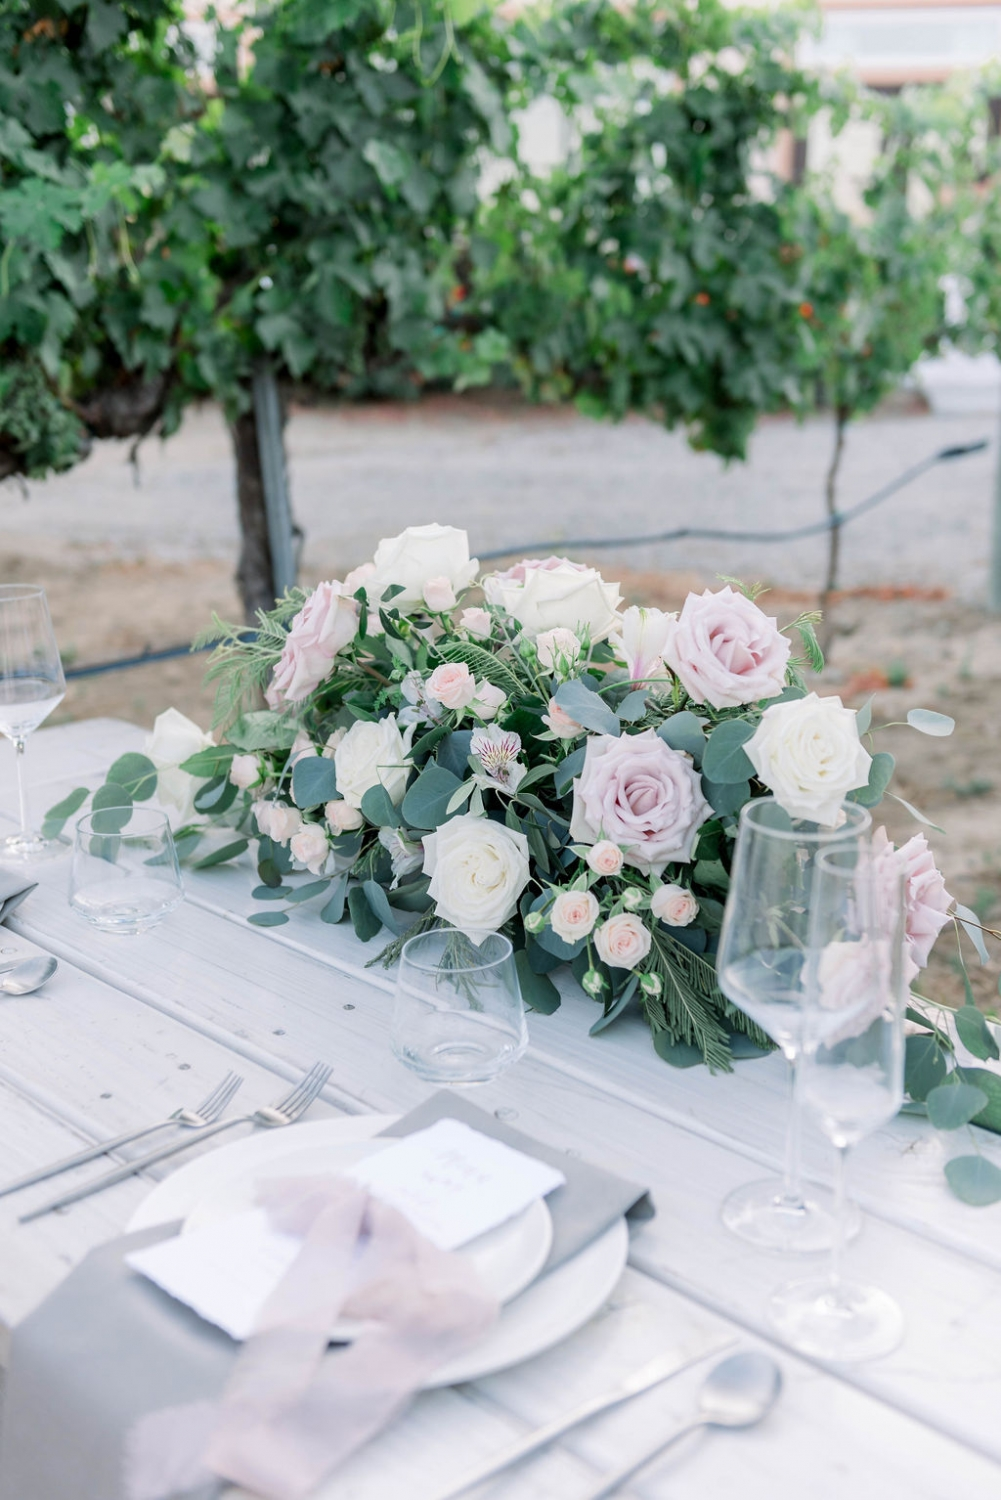 pink and blush roses arranged in a centerpiece